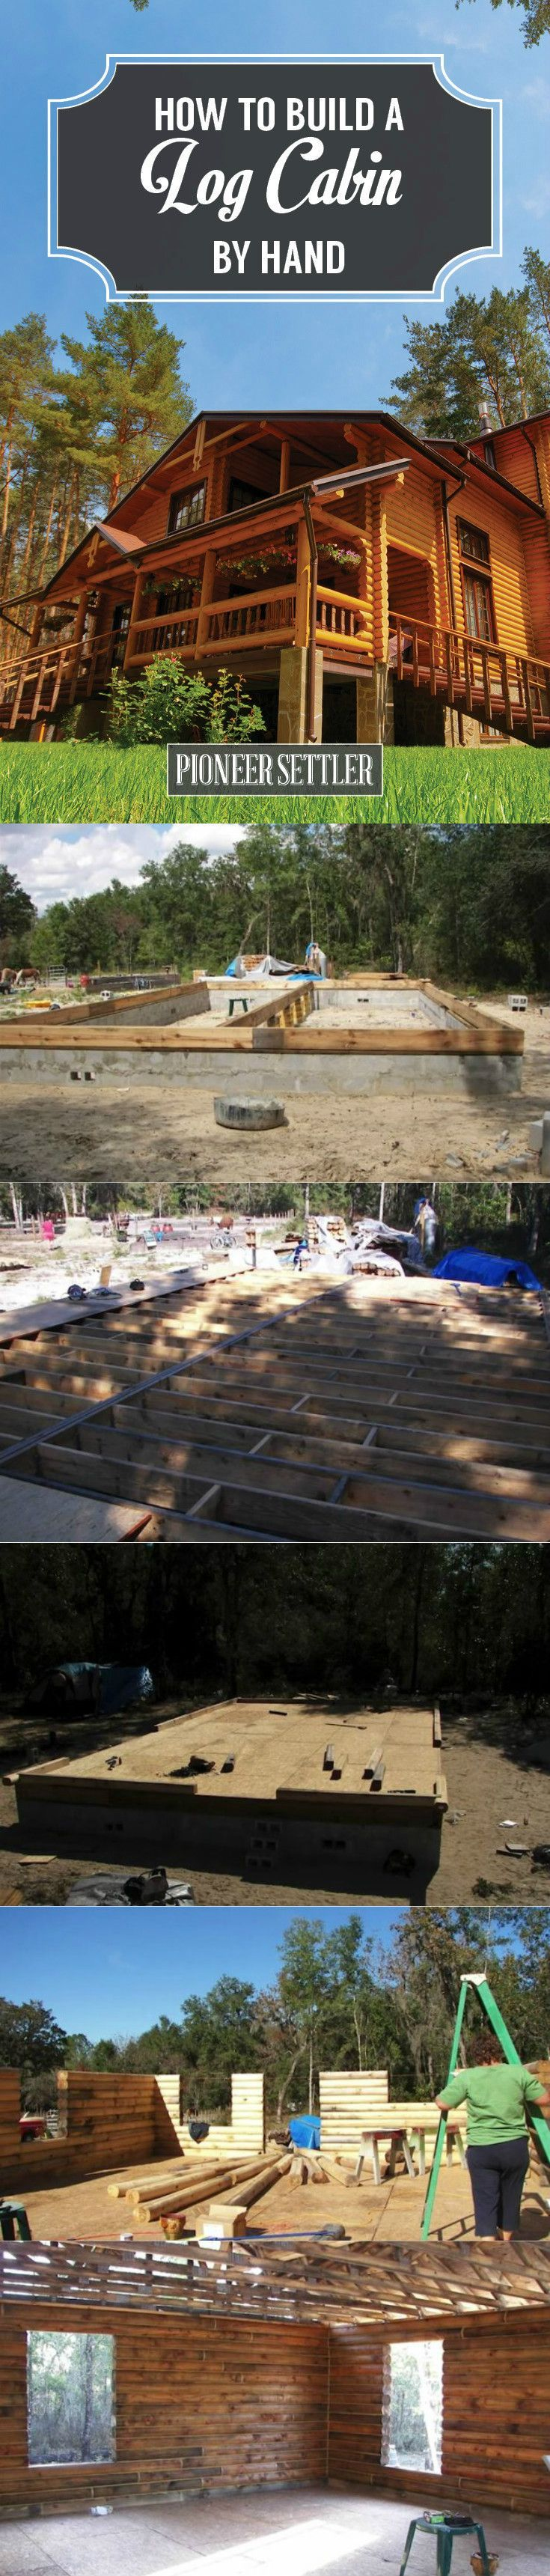 How to Build a Log Cabin By Hand - Homesteading Ideas | Step By Step Tutorial by Pioneer Settler at http://pioneersettler.com/build-log-cabin-by-hand/